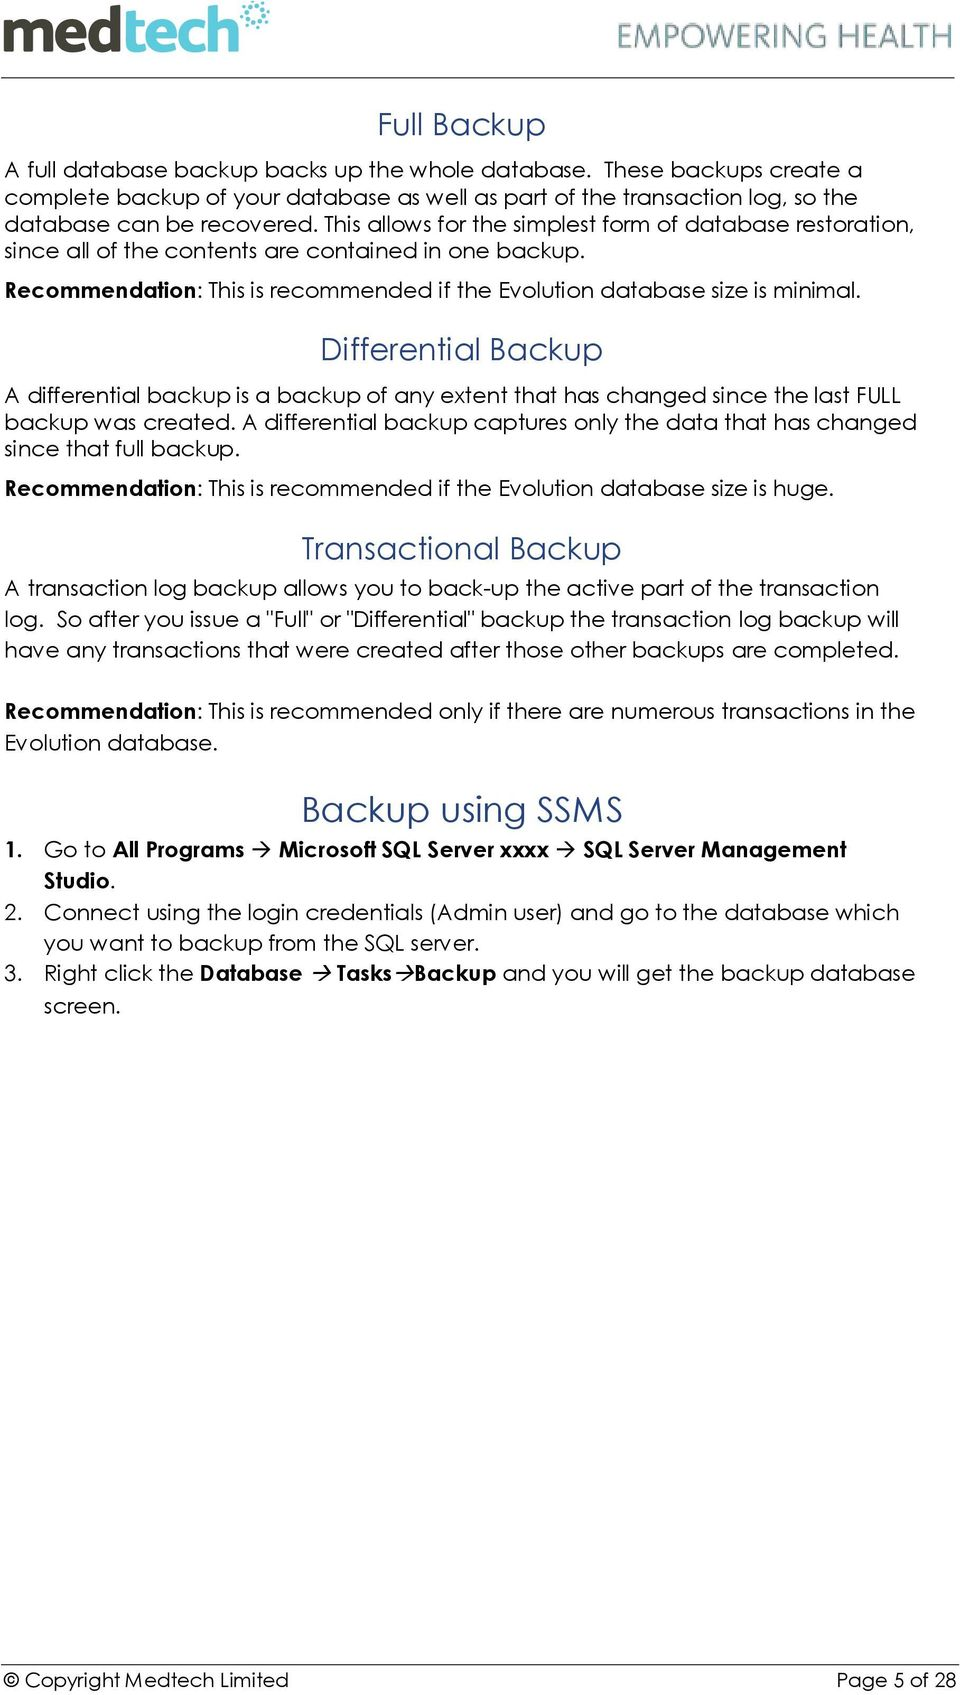 Differential Backup A differential backup is a backup of any extent that has changed since the last FULL backup was created.